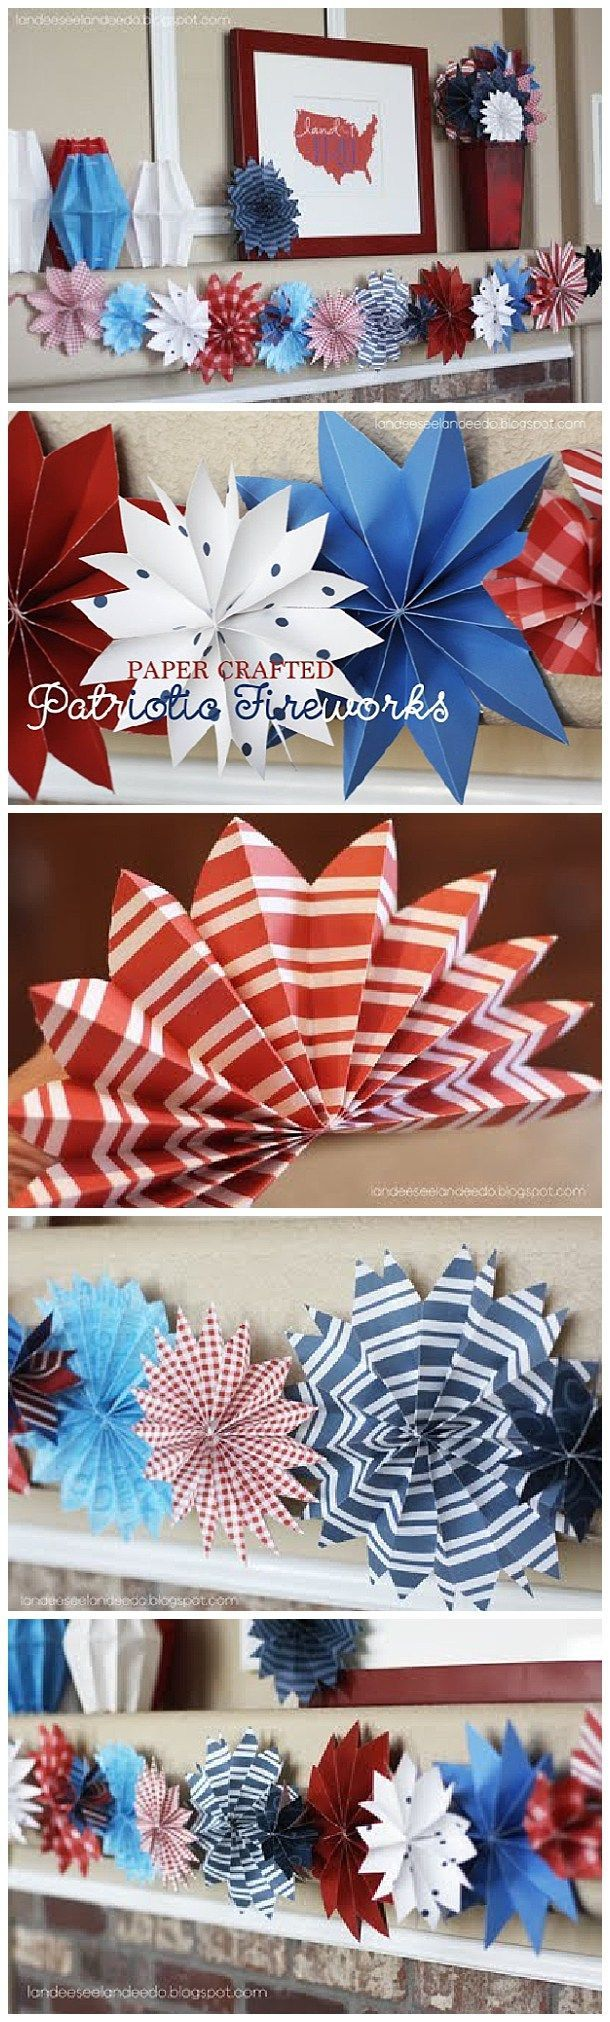 DIY Easy Paper Crafted 4th of July Fireworks Decorations - Go through your scrapbook paper stash and pull out your red, white & blue papers.  This works with cardstock as well as regular paper.